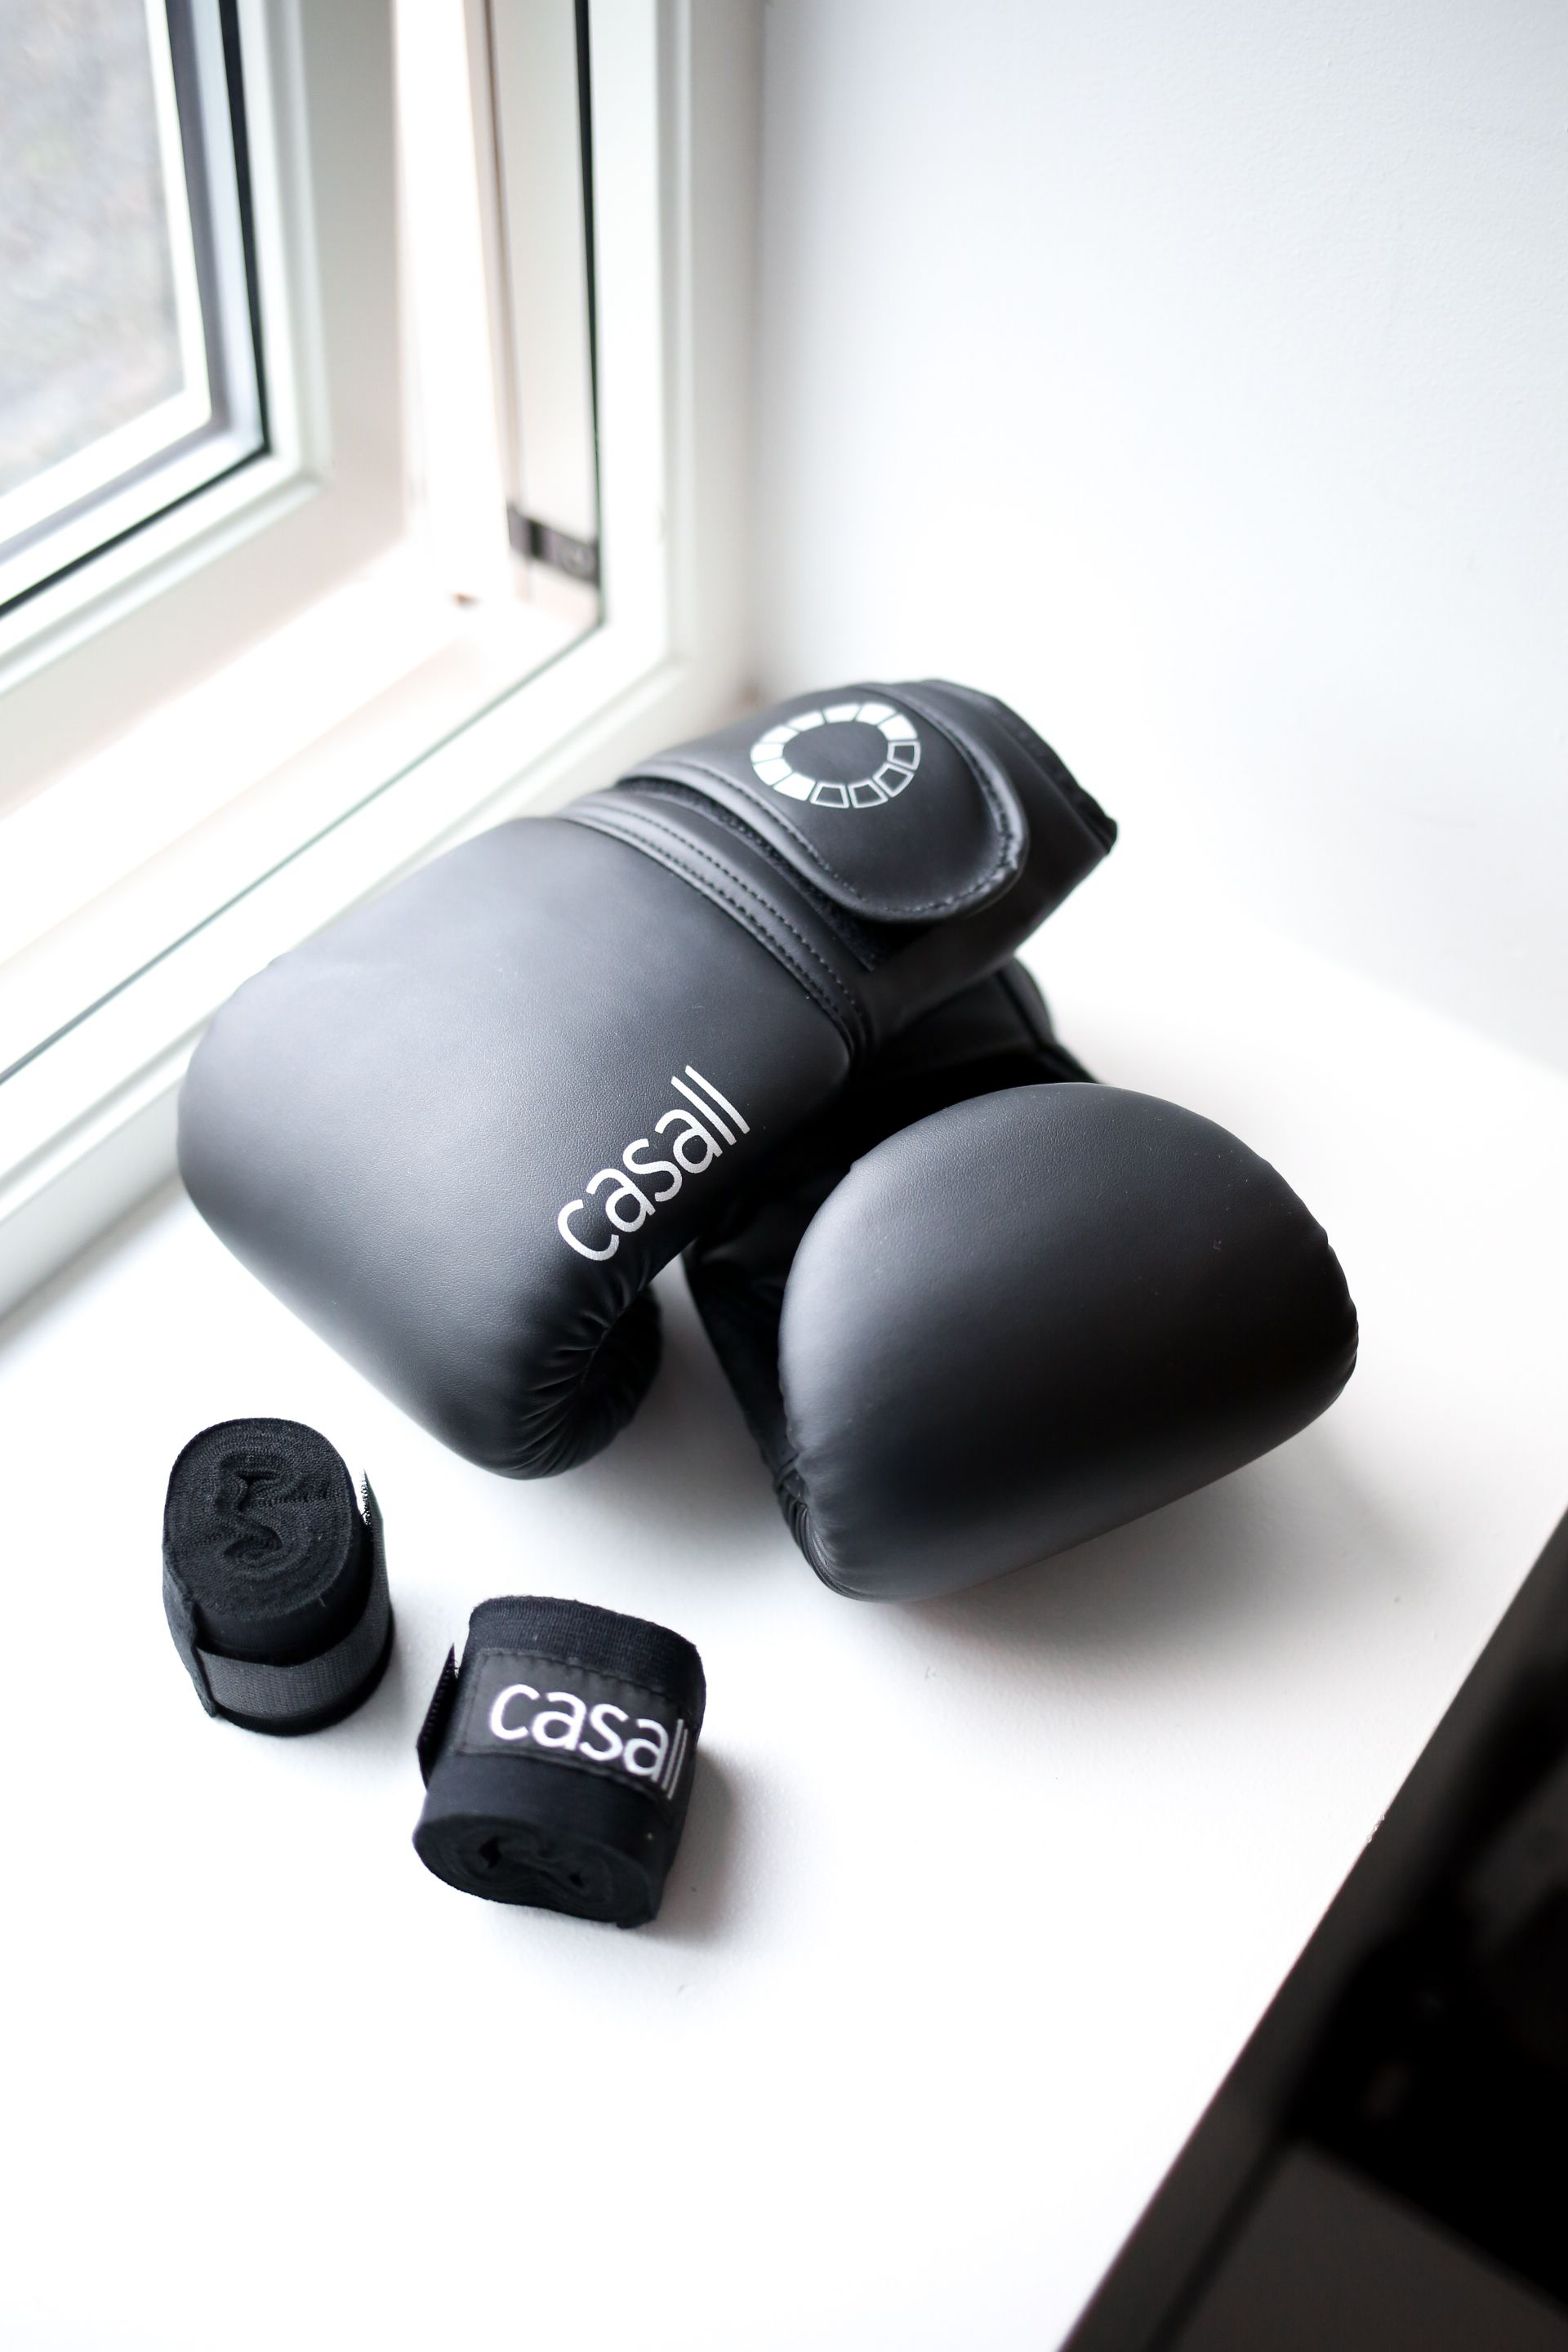 Let's do some kickboxing!